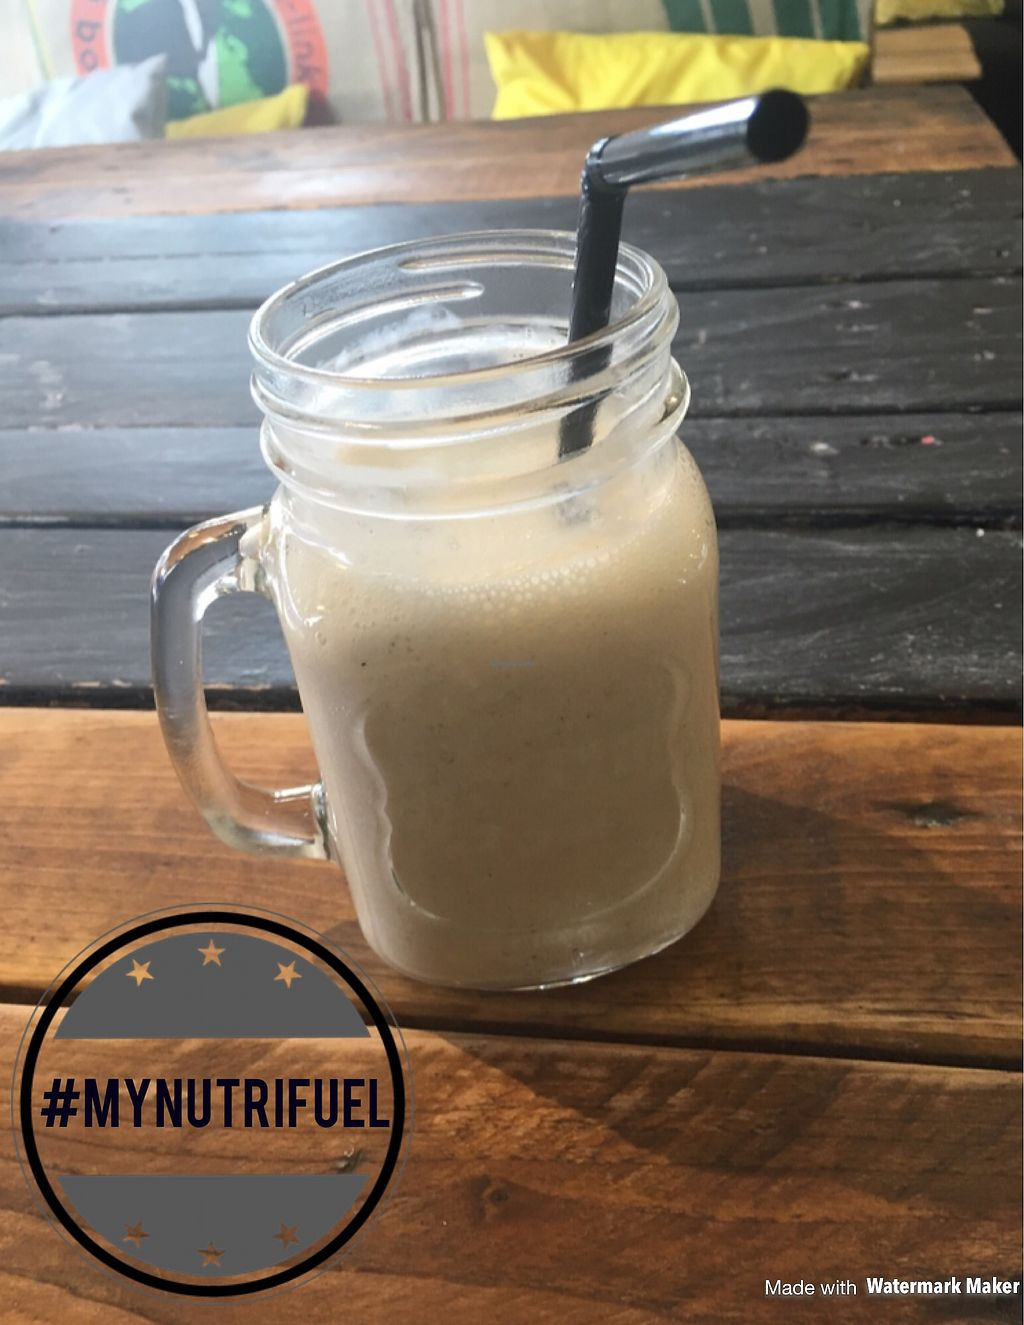 """Photo of The Lemon Witch Kitchen  by <a href=""""/members/profile/MyNutriFuel"""">MyNutriFuel</a> <br/>Banana dairy free coconut milk milkshake #mynutrifuel <br/> July 10, 2017  - <a href='/contact/abuse/image/94552/278843'>Report</a>"""